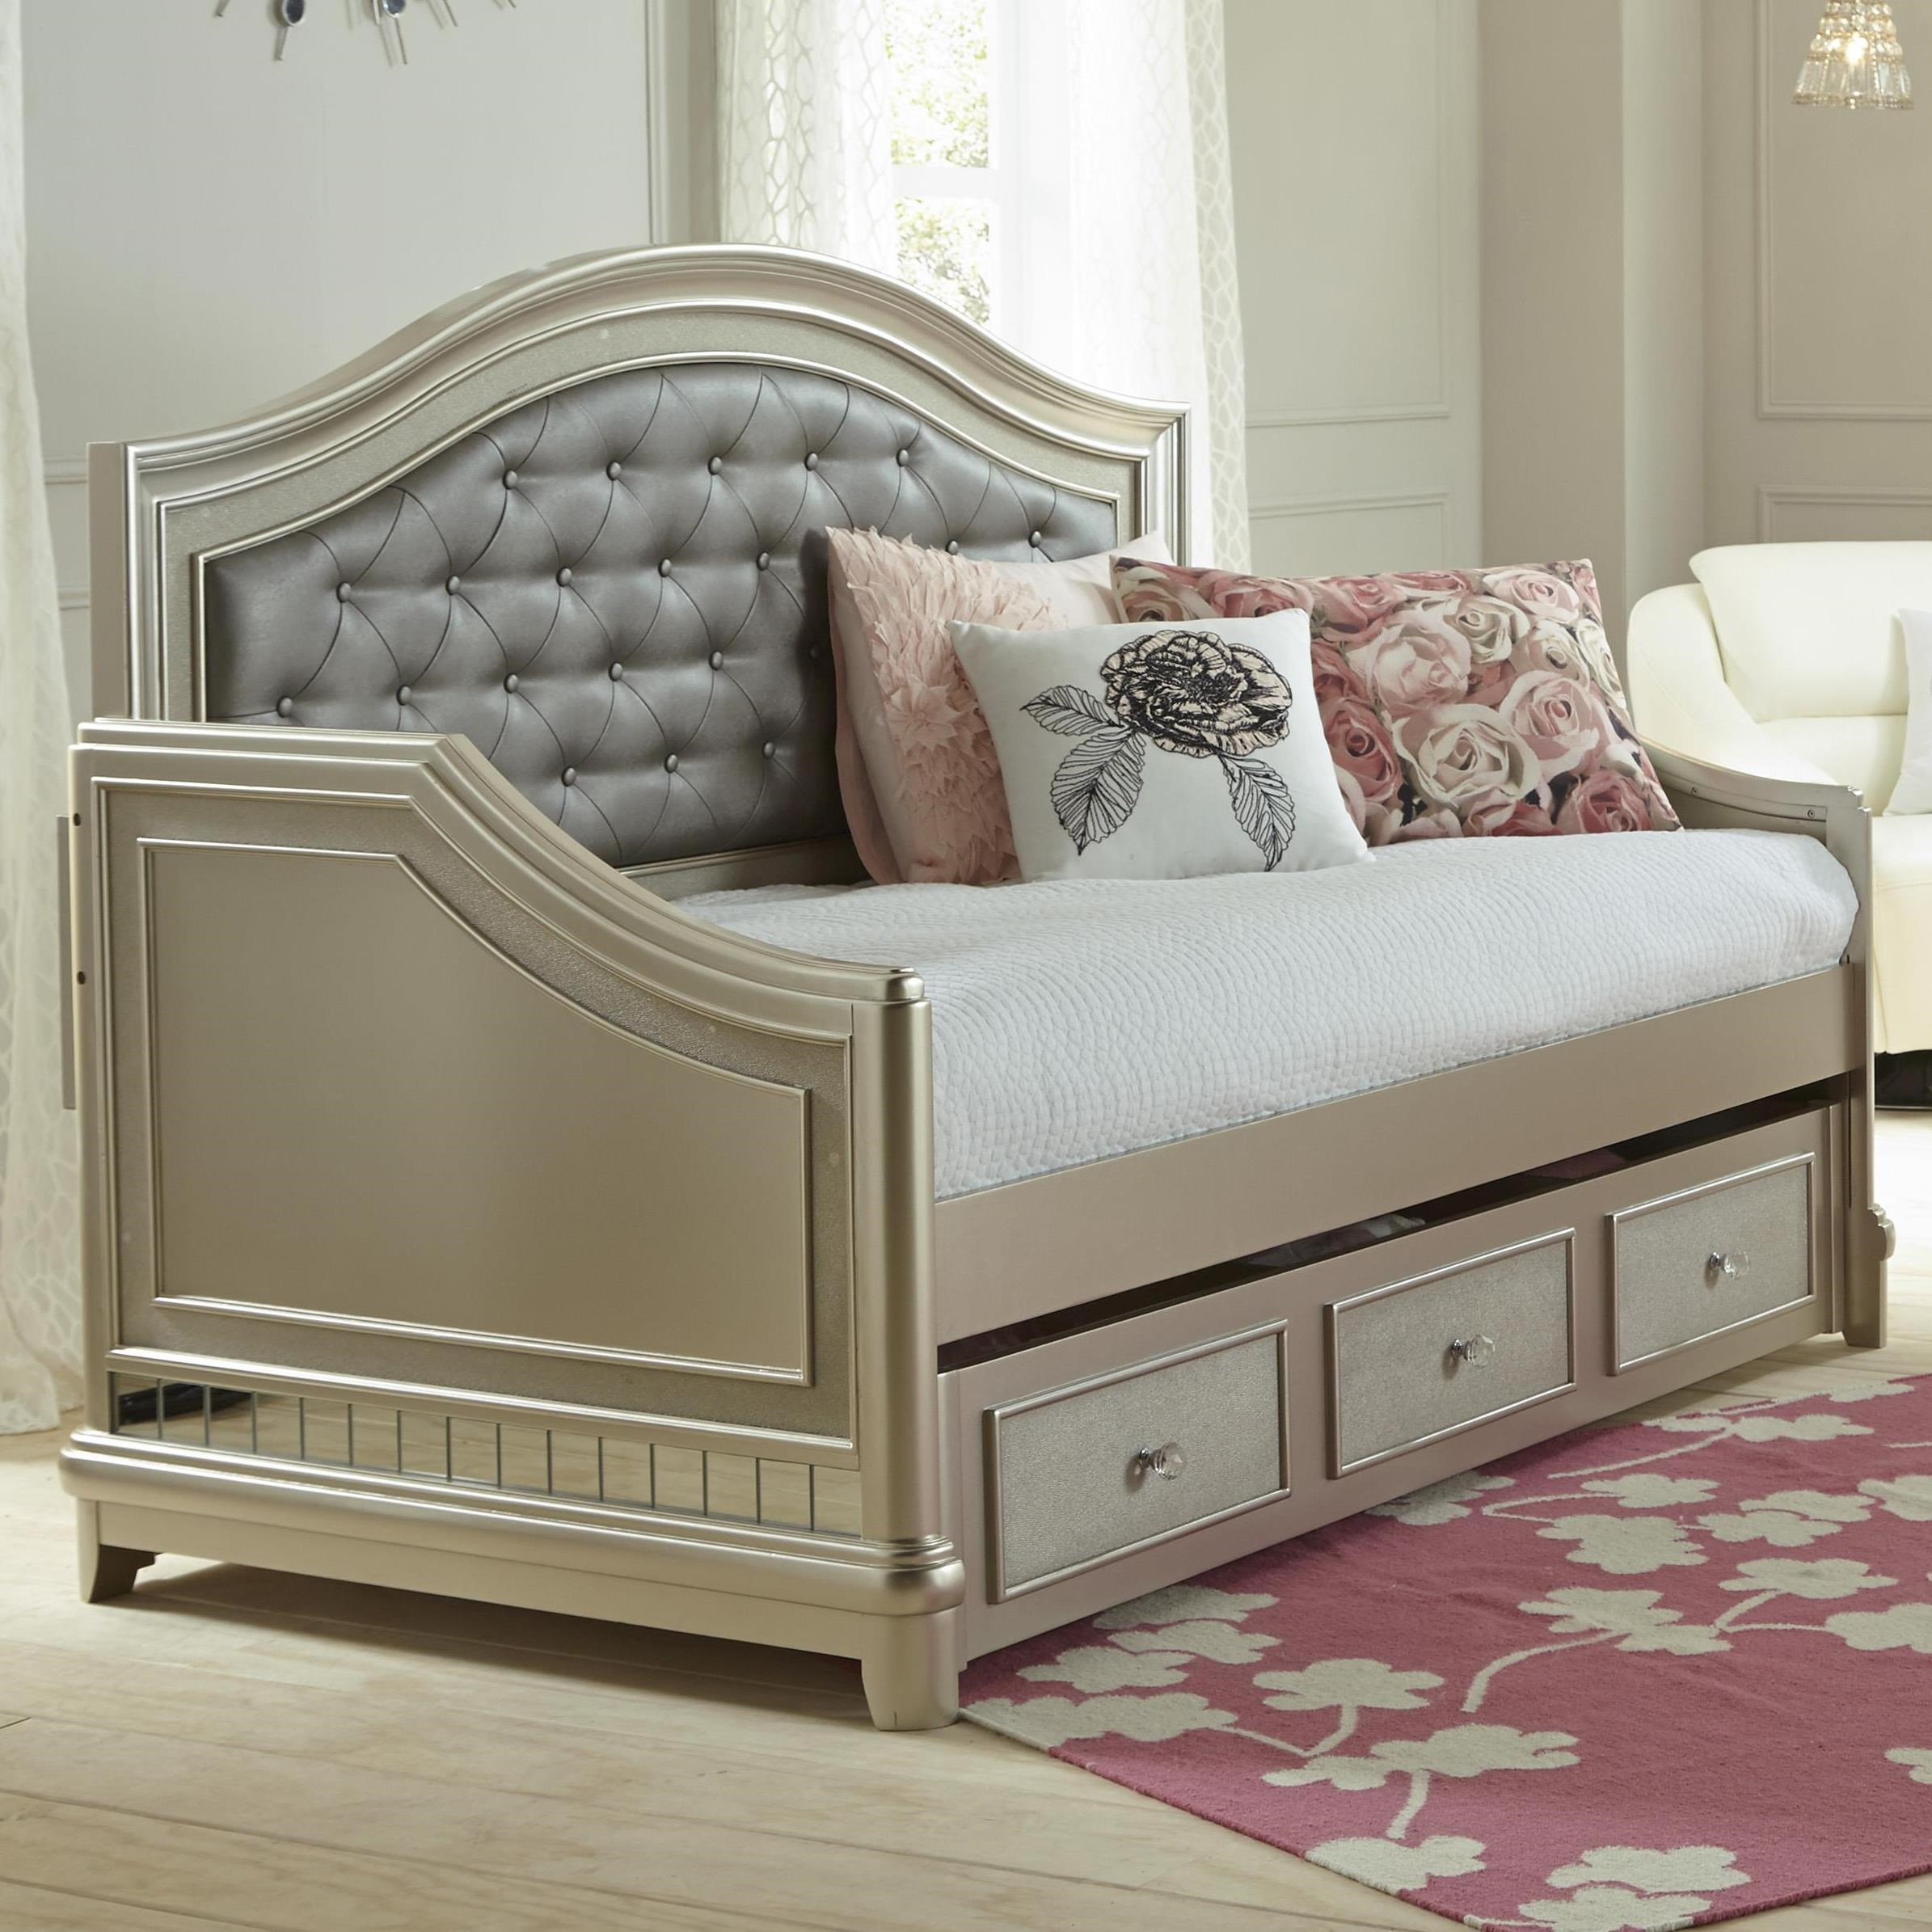 Tufted Day Bed 28 Images Tribeca Beige Tufted Daybed